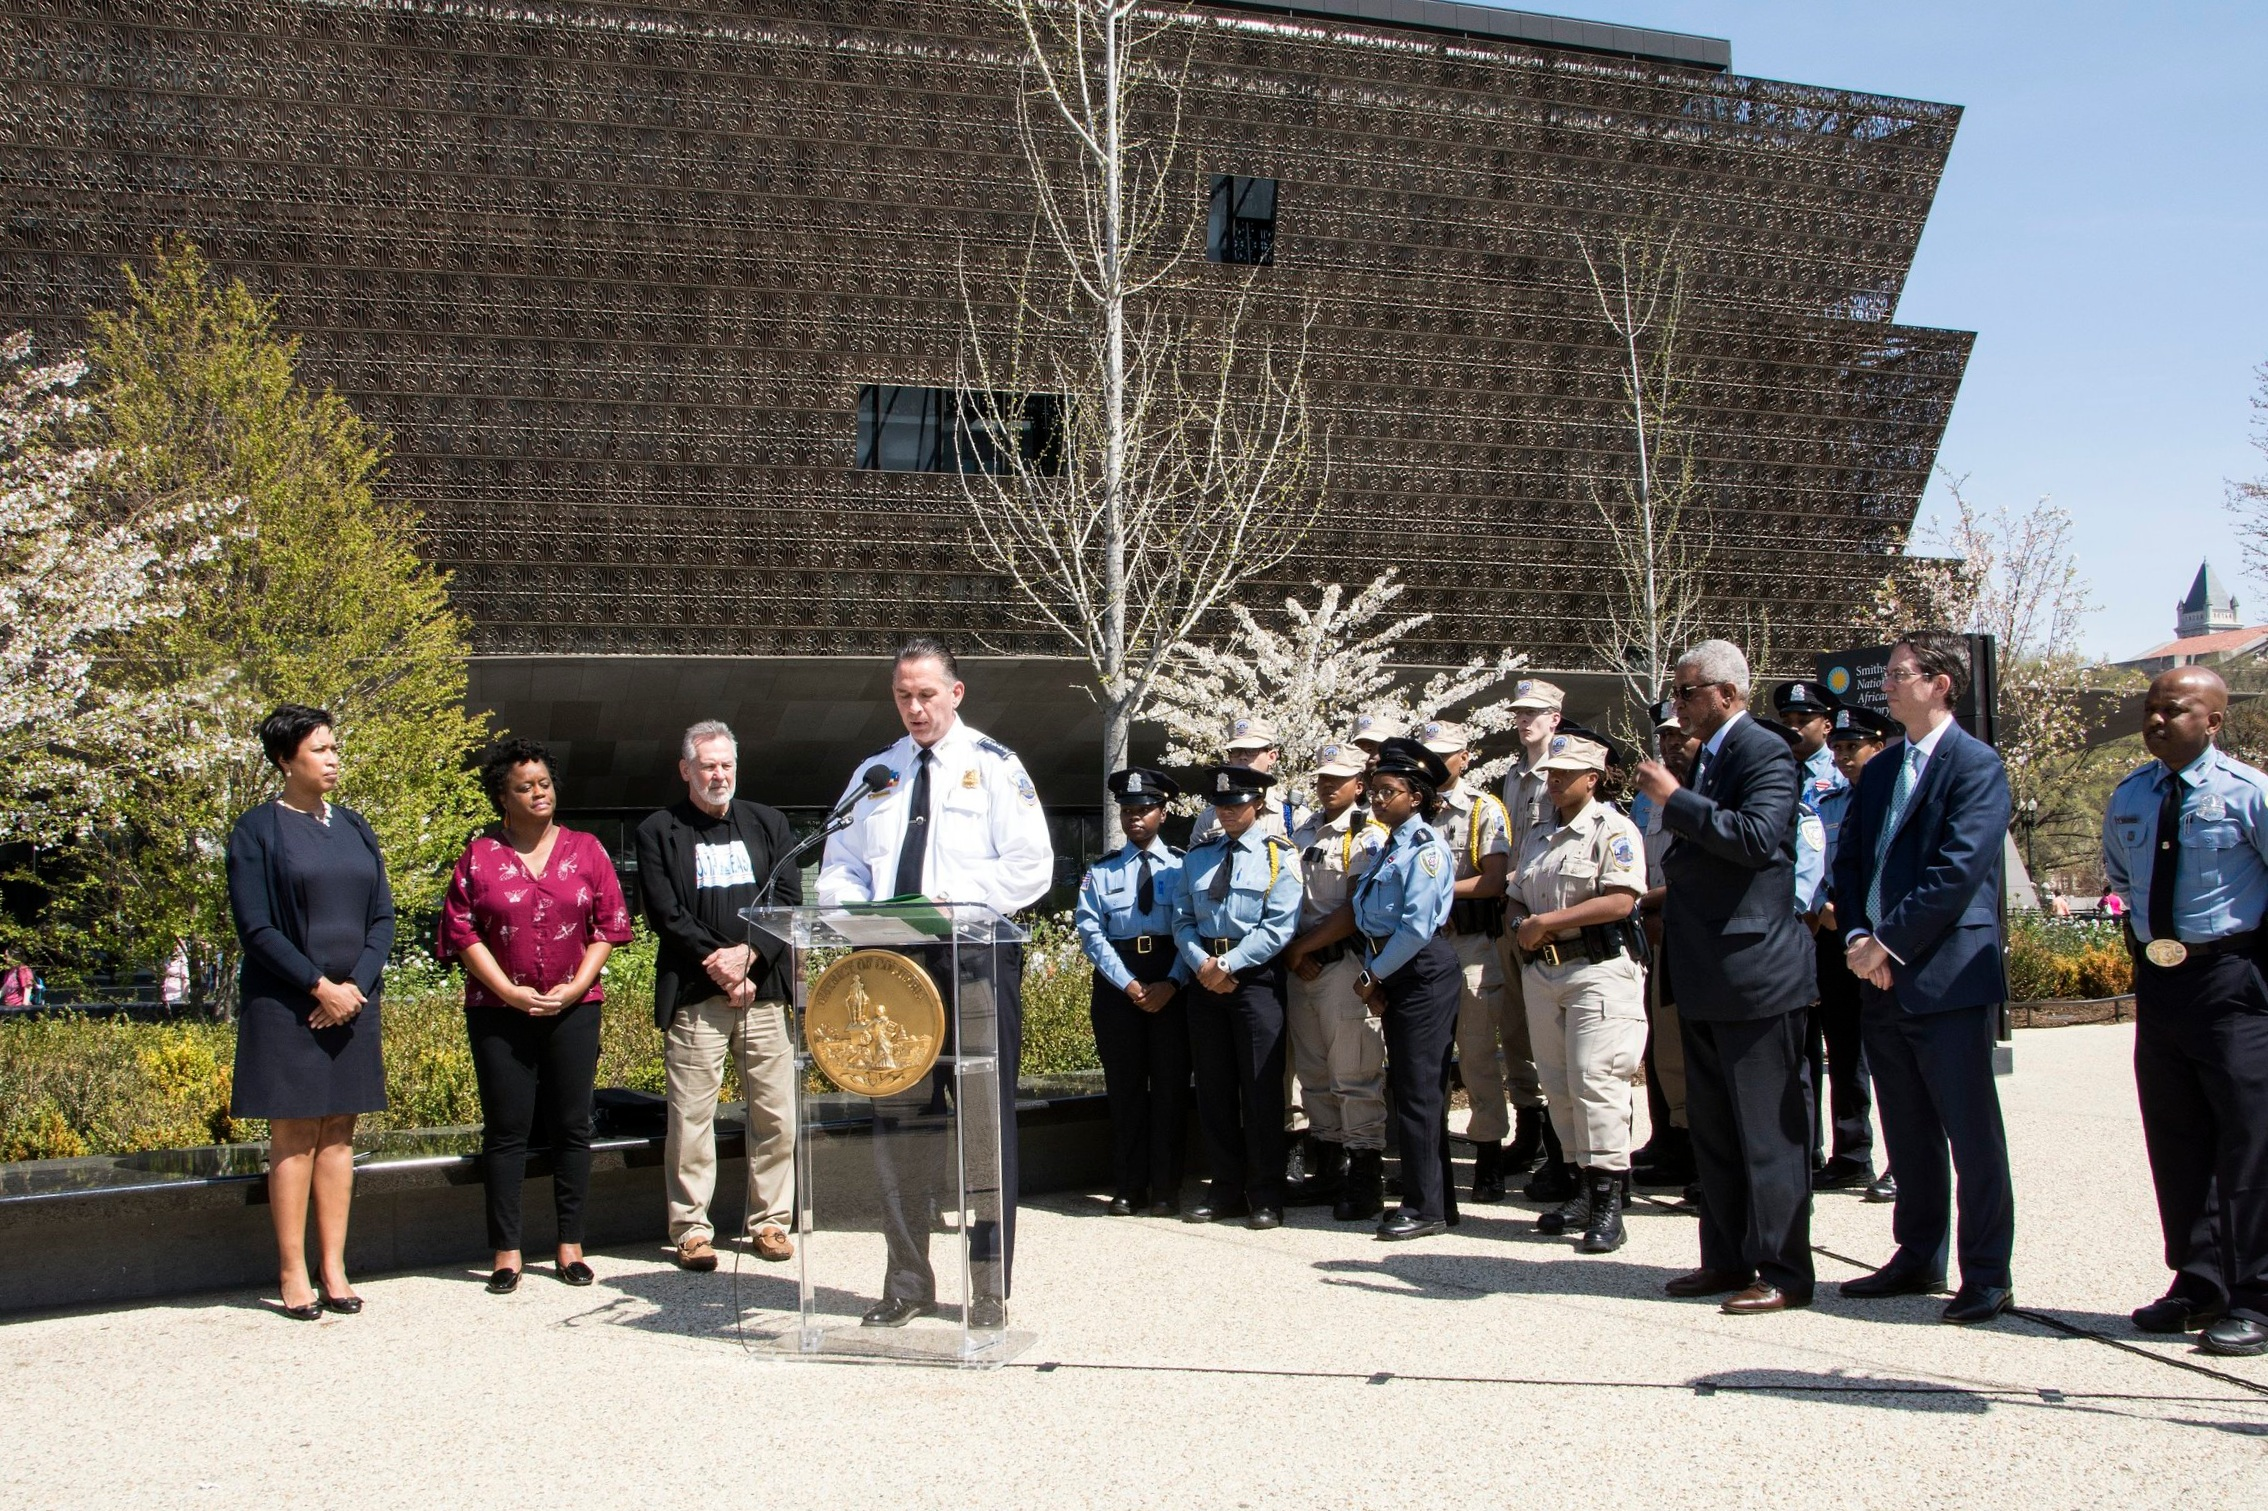 Mayor Bowser, left, and Police Chief Newsham announcing the training at the National Museum of African American History and Culture. (Credit: Elliot Williams)